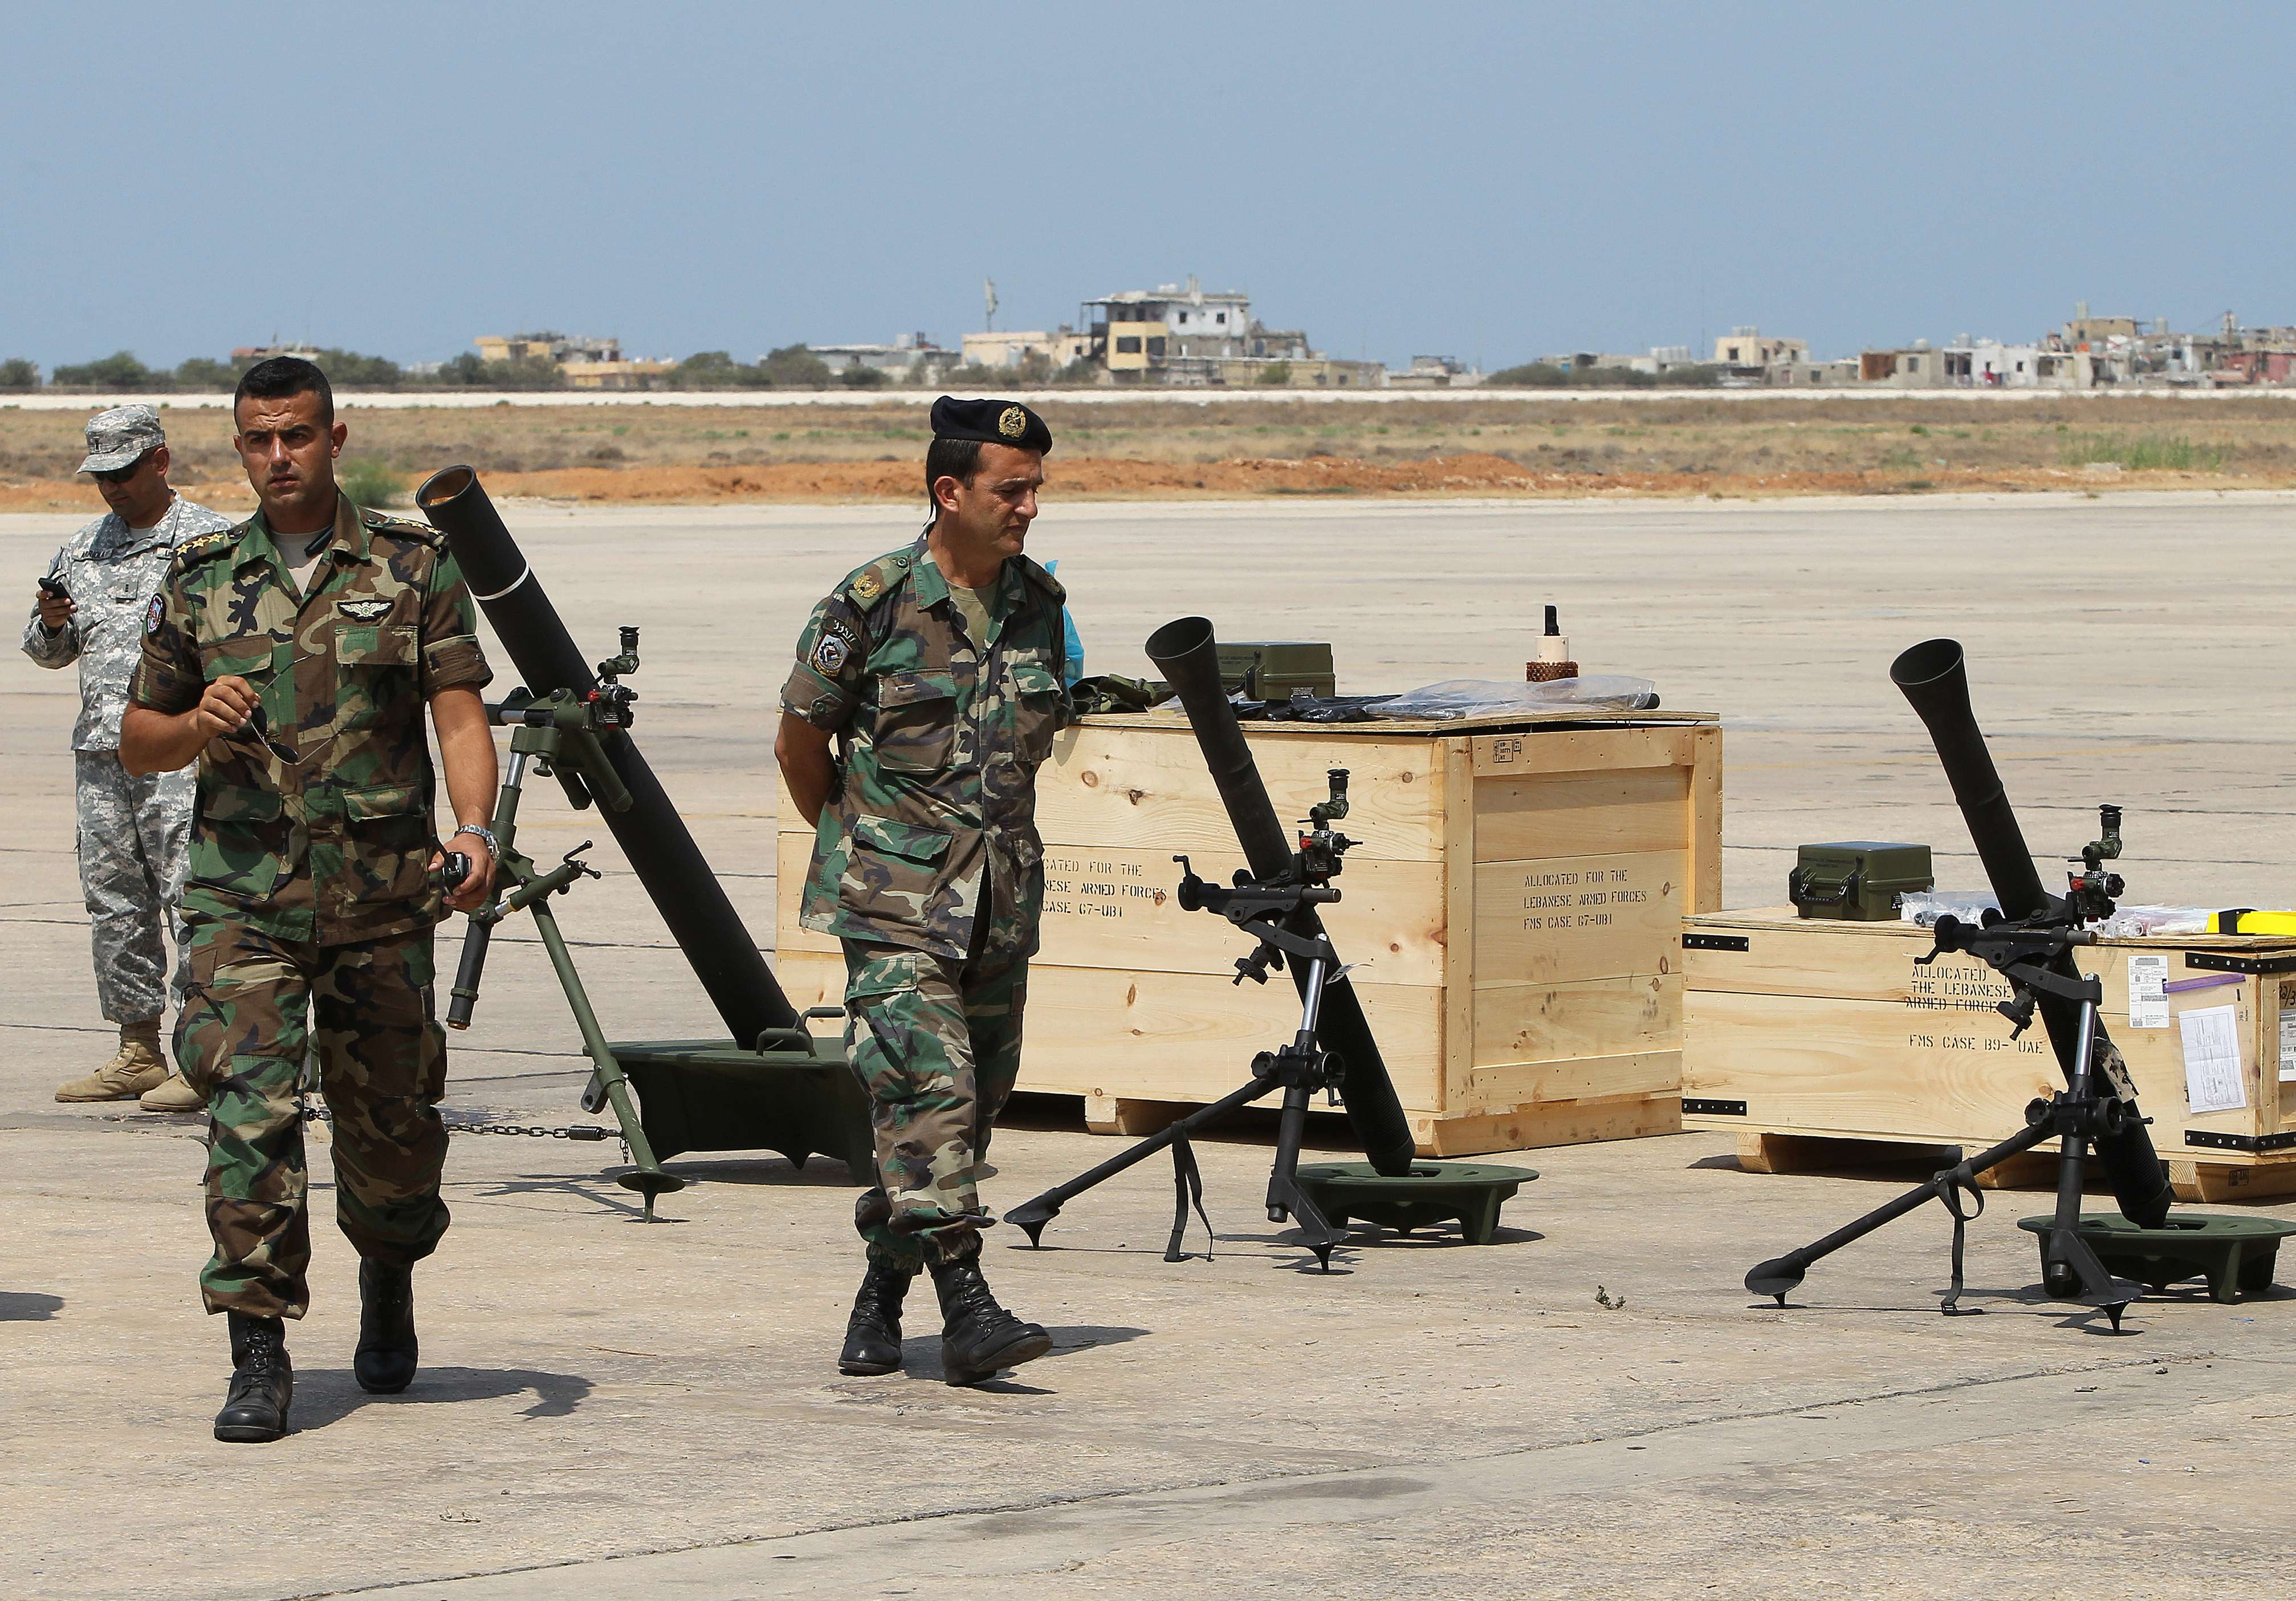 A forklift moves a shipment of weapons that was delivered by a US air force plane on August 29, 2014 at a Lebanese military base at Beirut International Airport. (AFP)